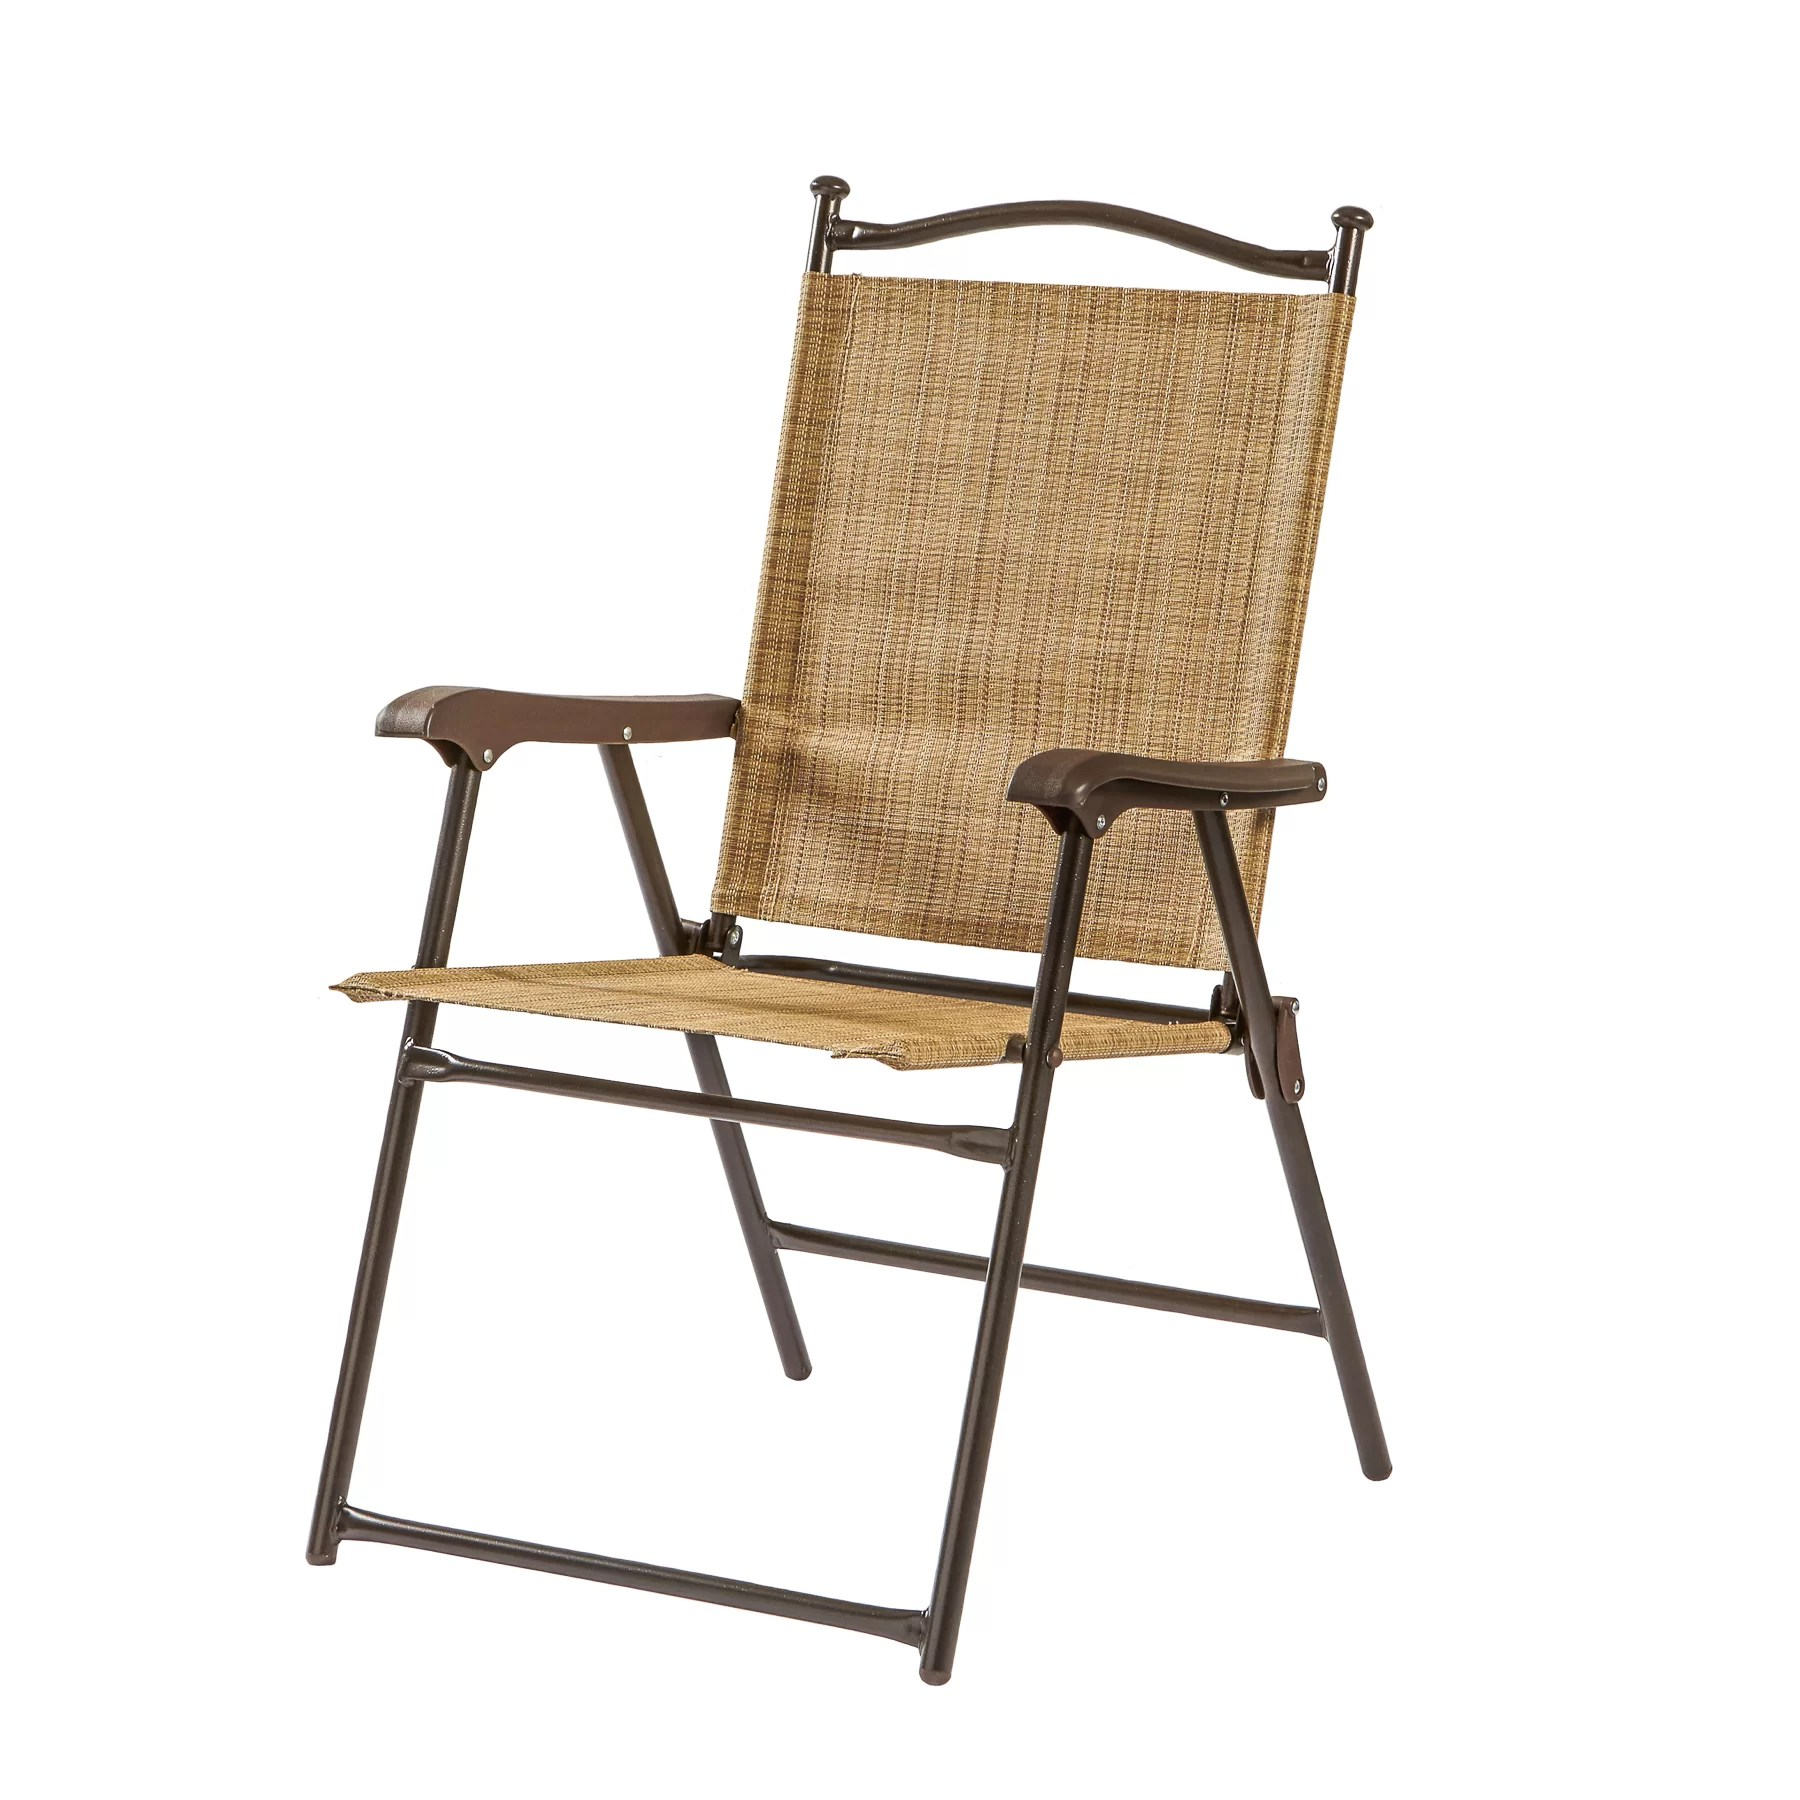 Greendale Home Fashions Sling Back Outdoor Chair  Reviews